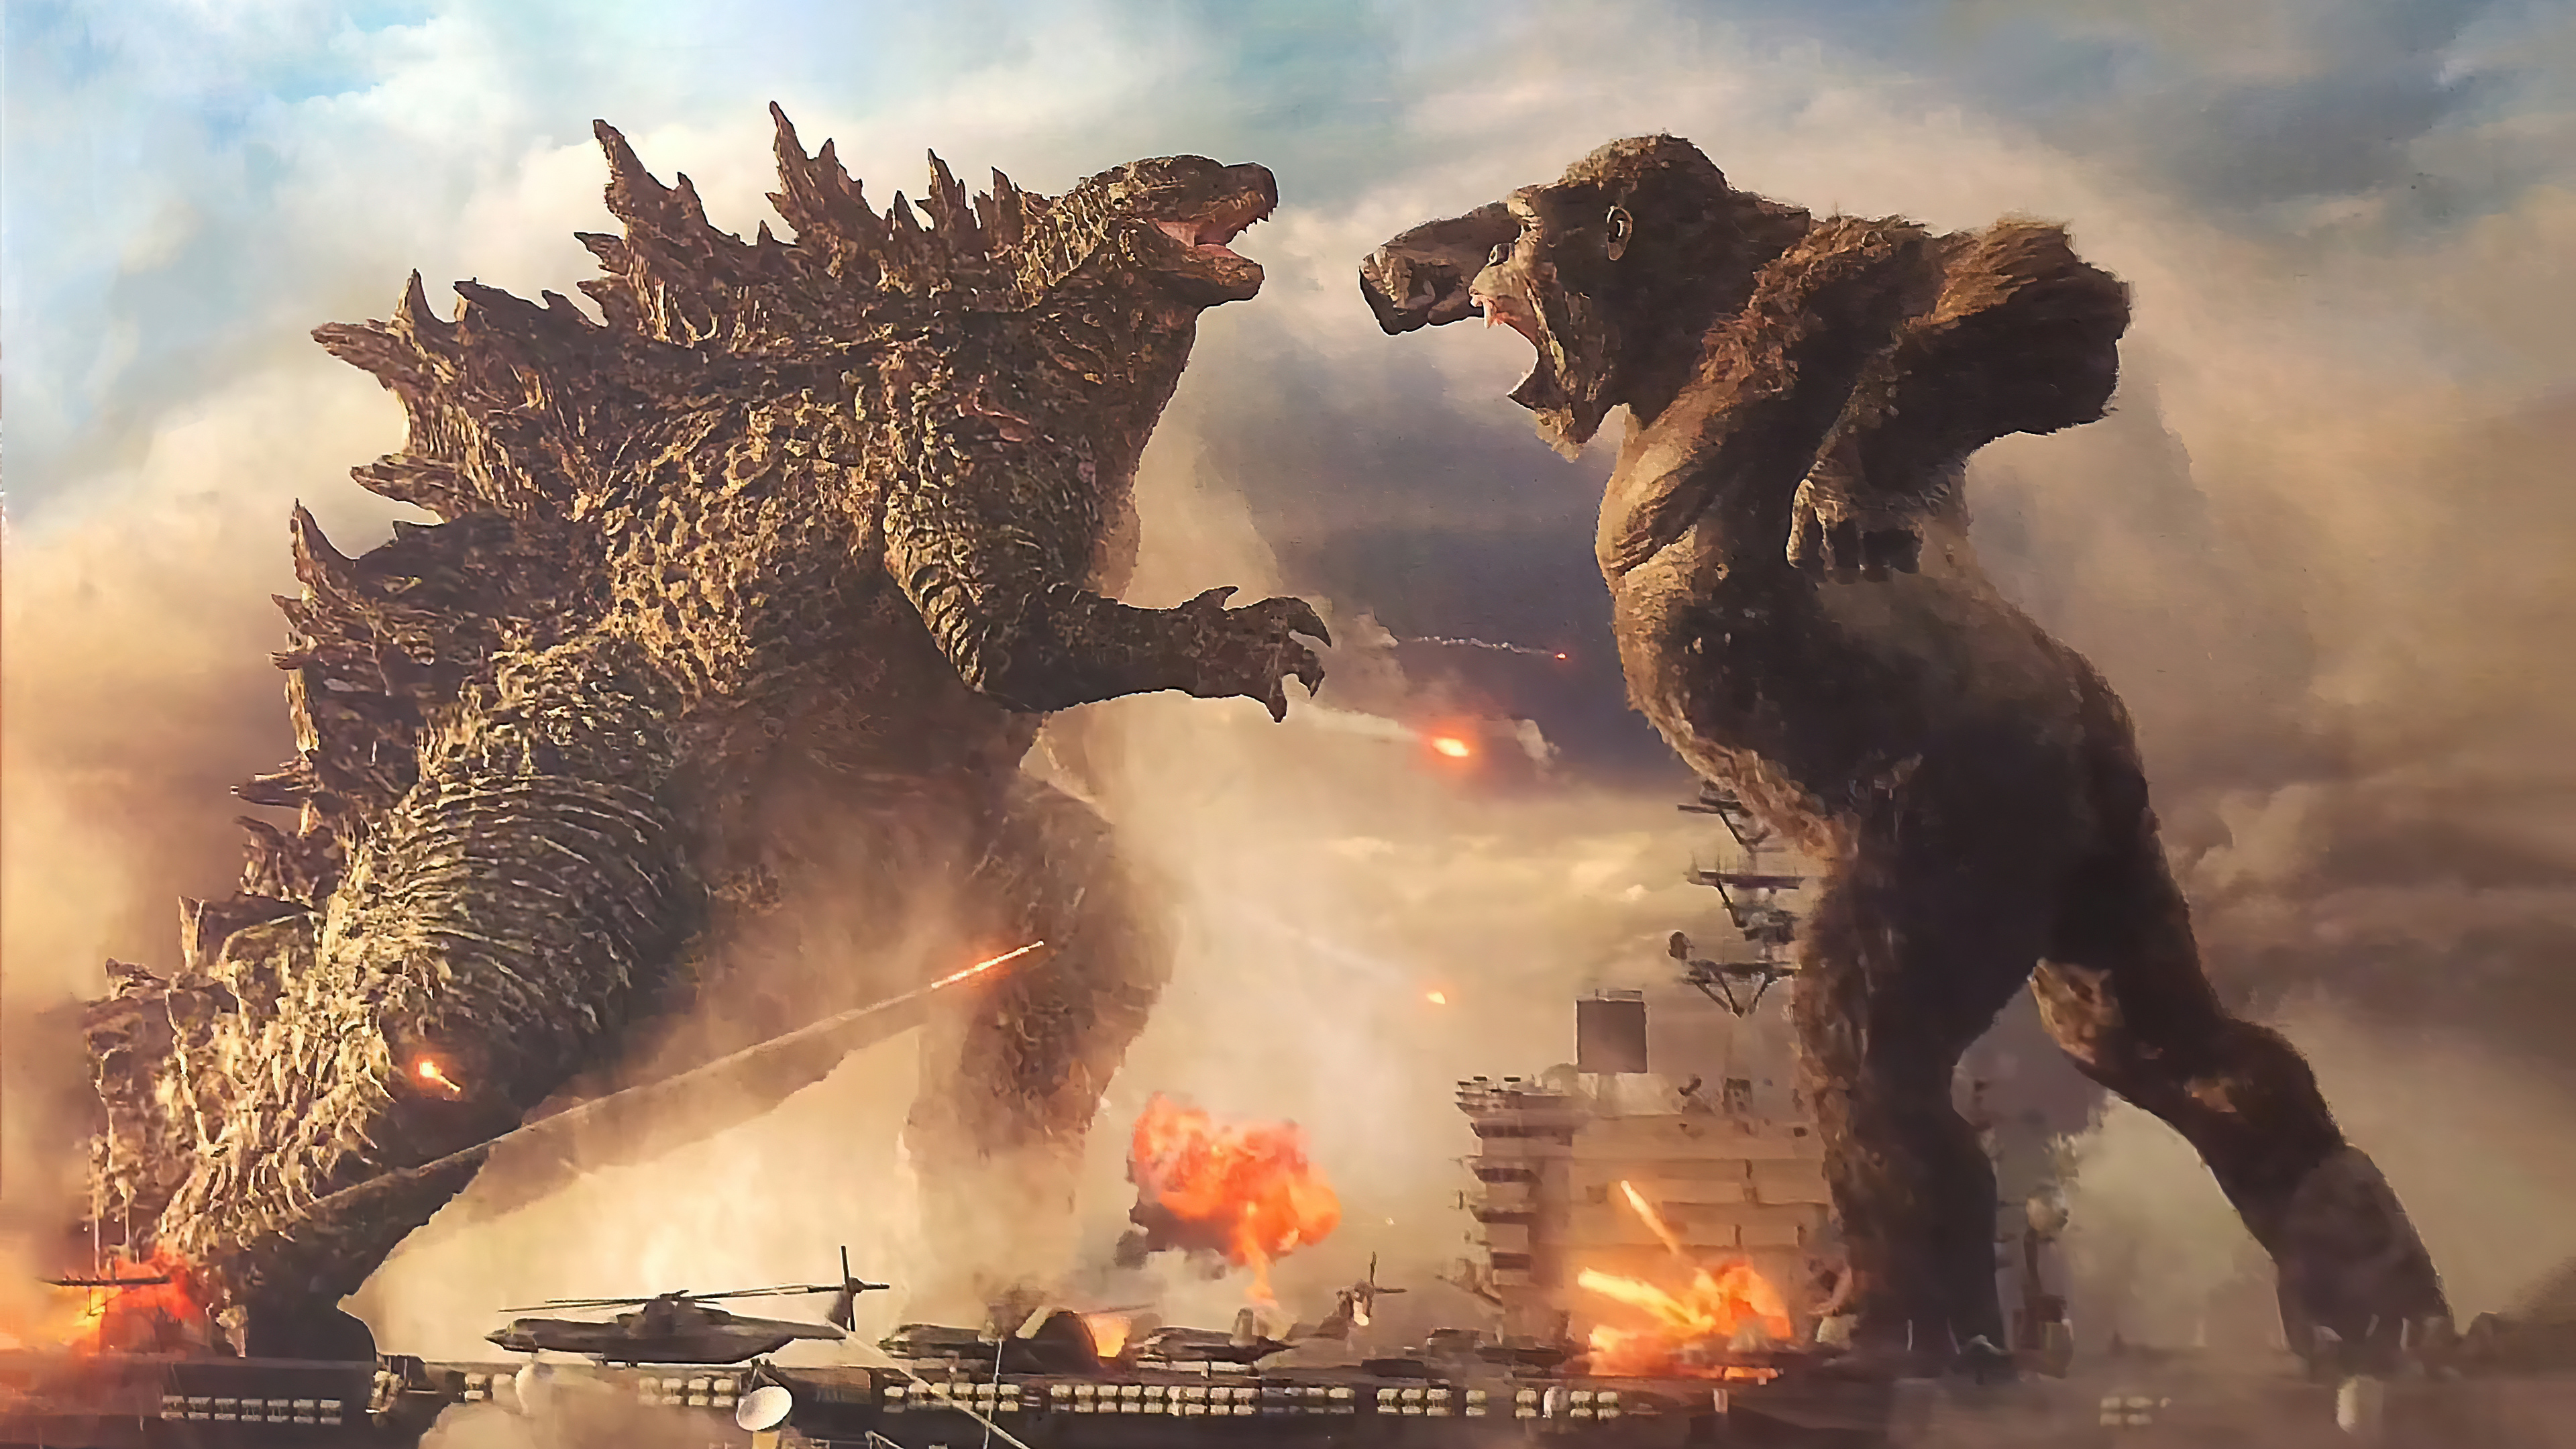 1366x768 Godzilla Vs King Kong 1366x768 Resolution HD 4k Wallpapers, Images, Backgrounds, Photos and Pictures